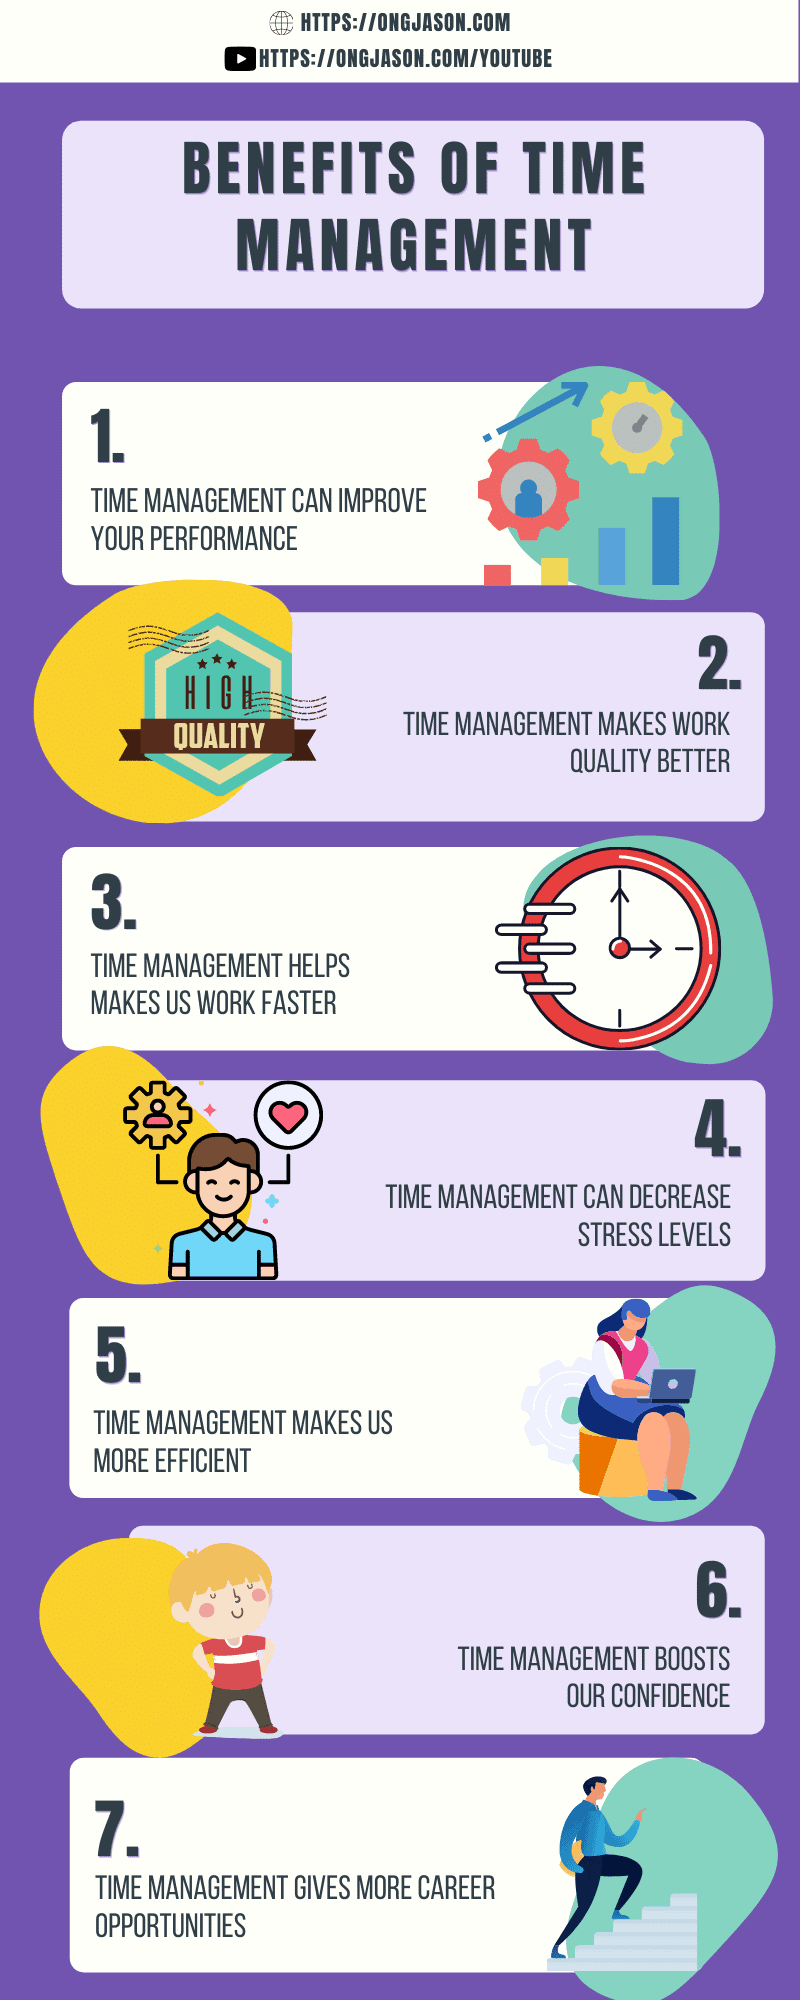 Benefits of Time Management Infographic